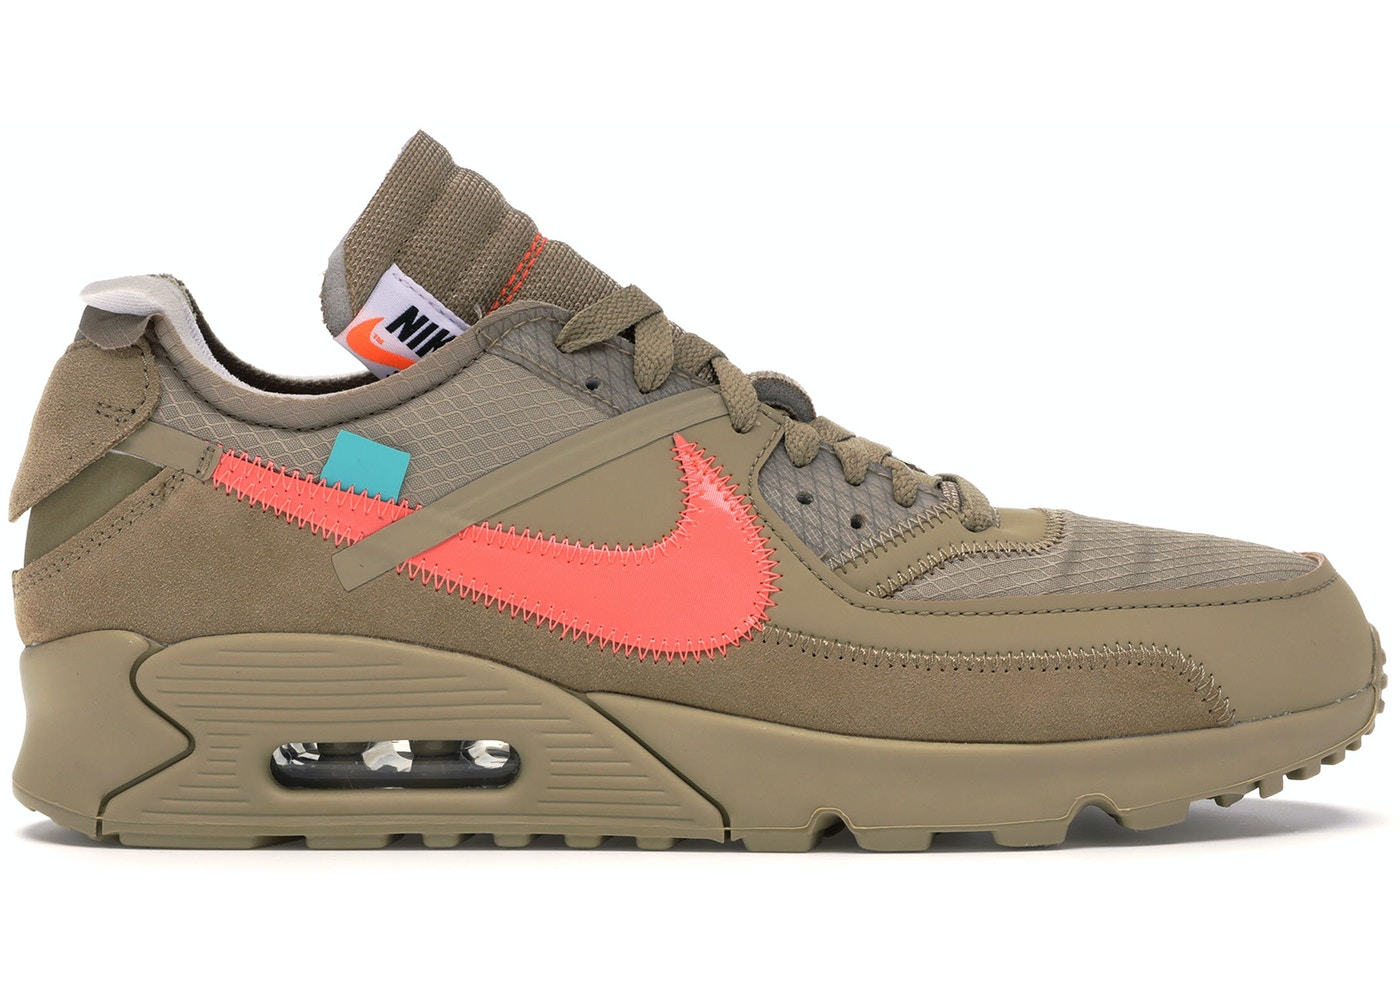 6642eac109926b Air Max 90 OFF-WHITE Desert Ore